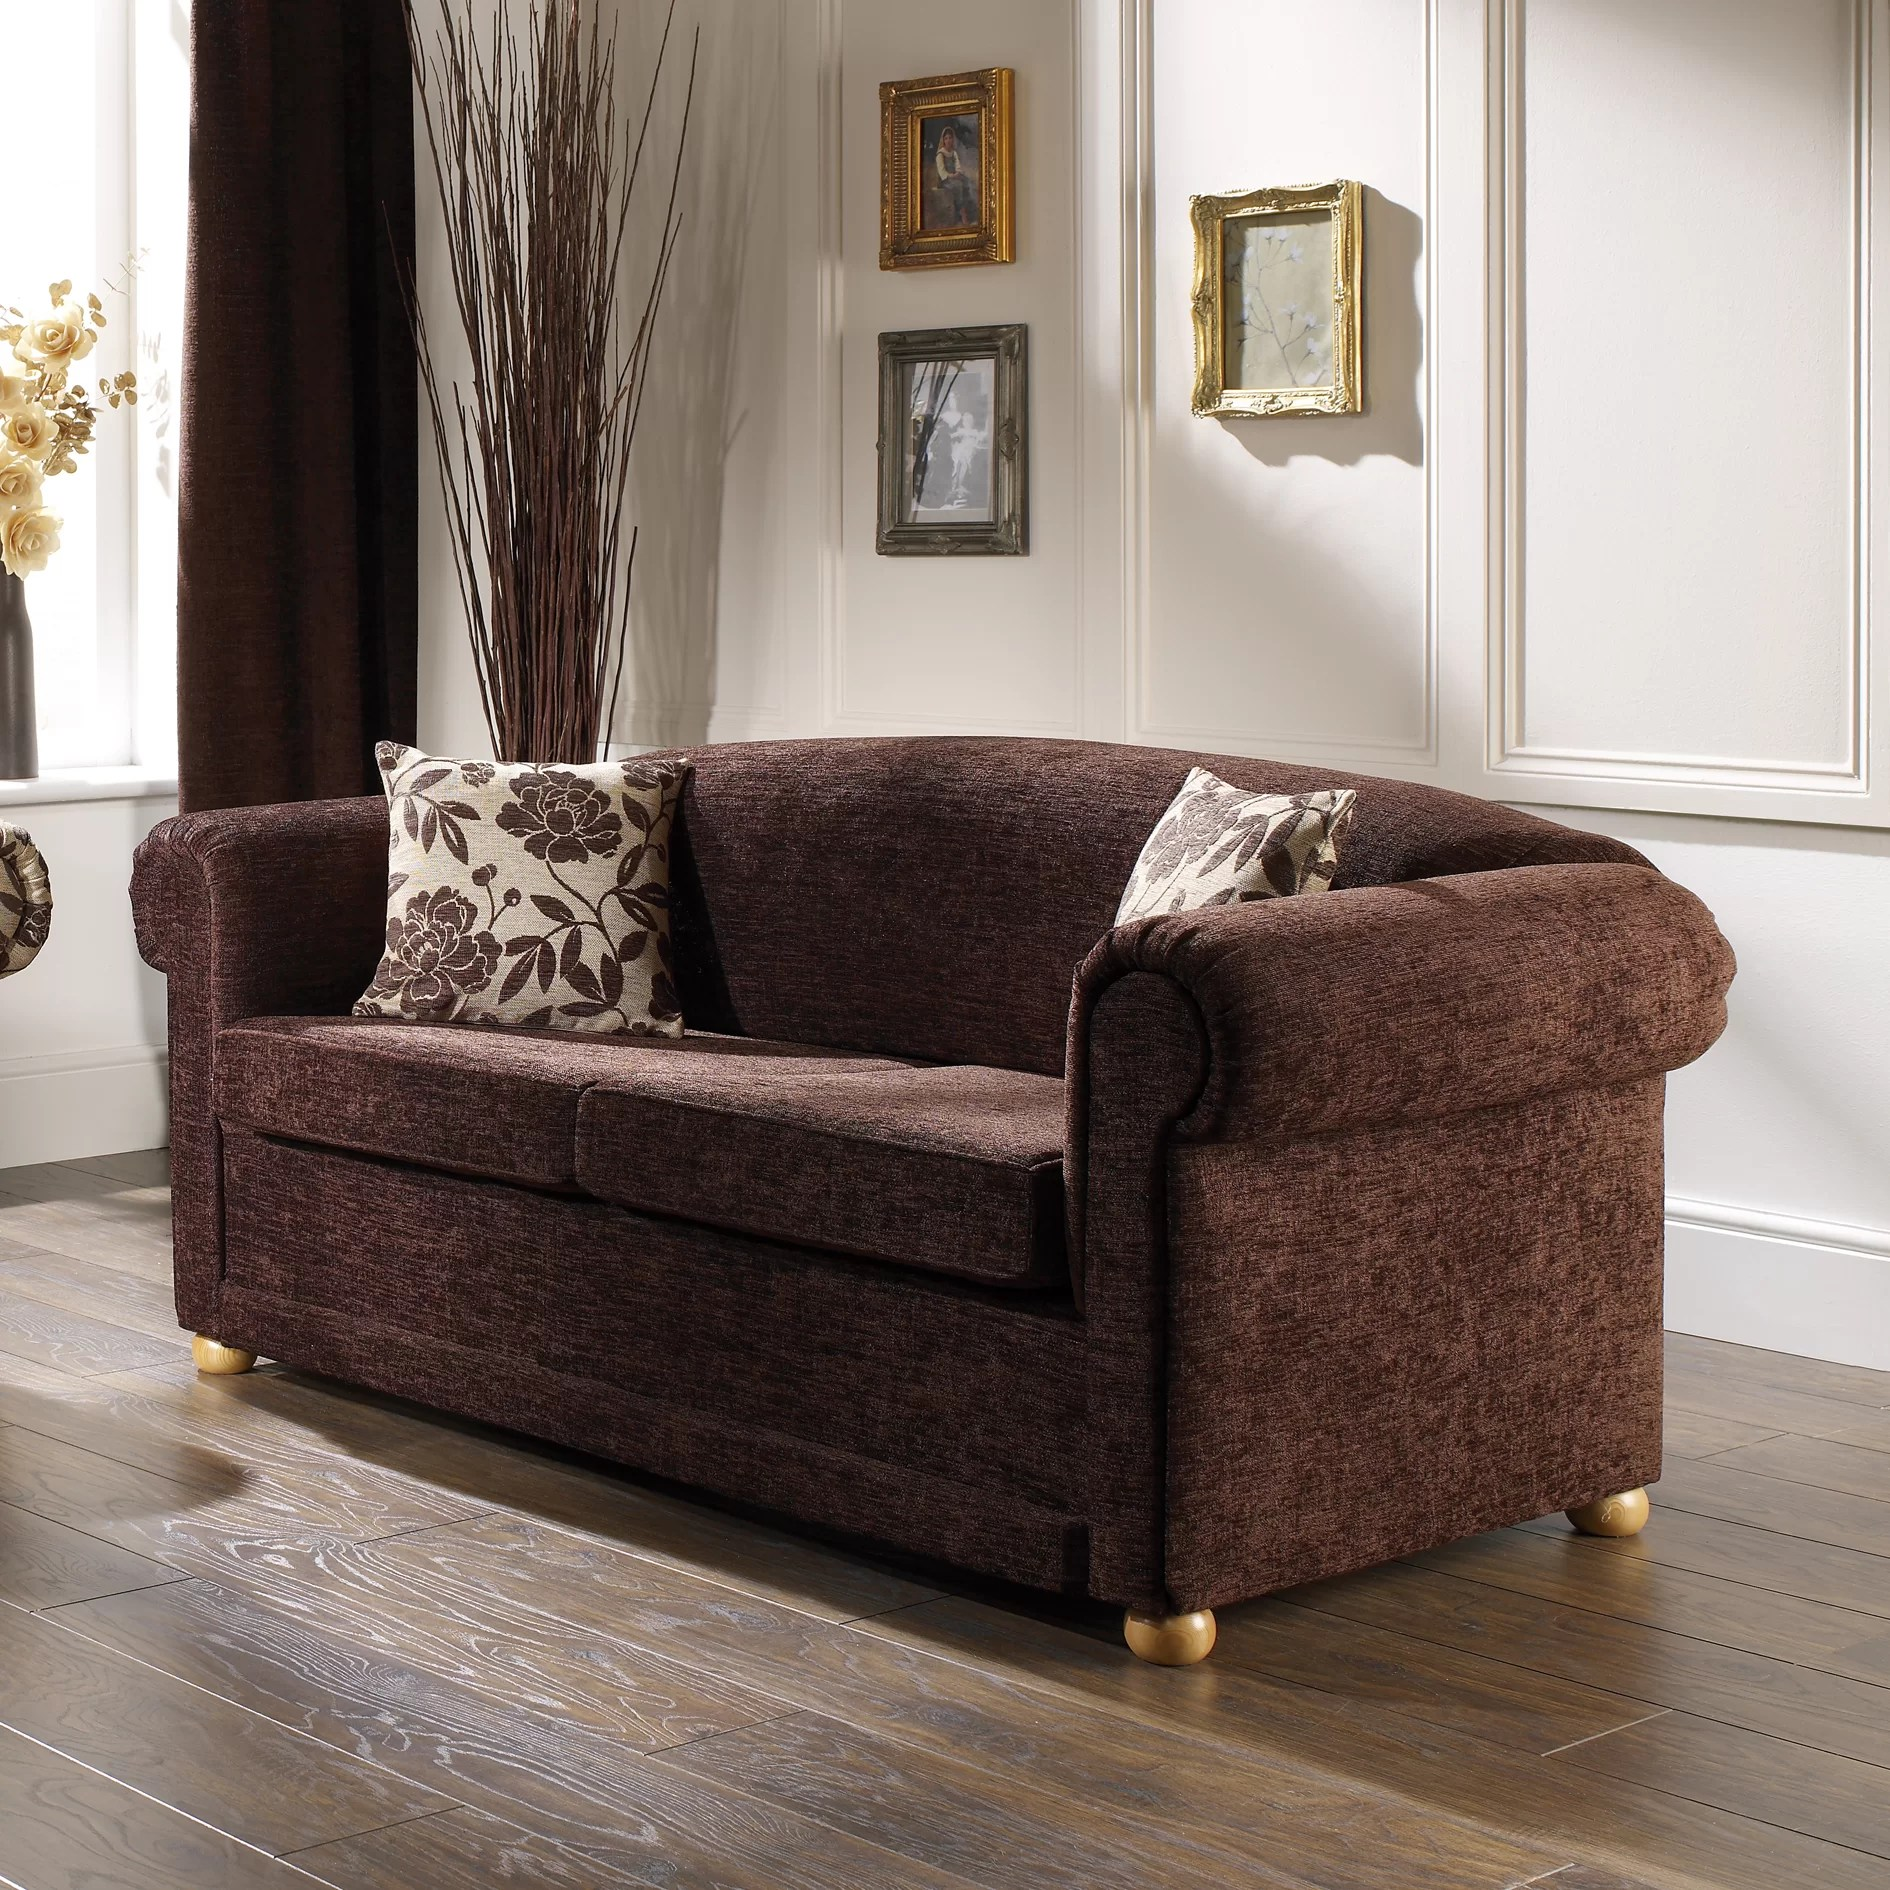 fold out sofa bed uk latest wooden design images churchfield chesterfield 2 seater